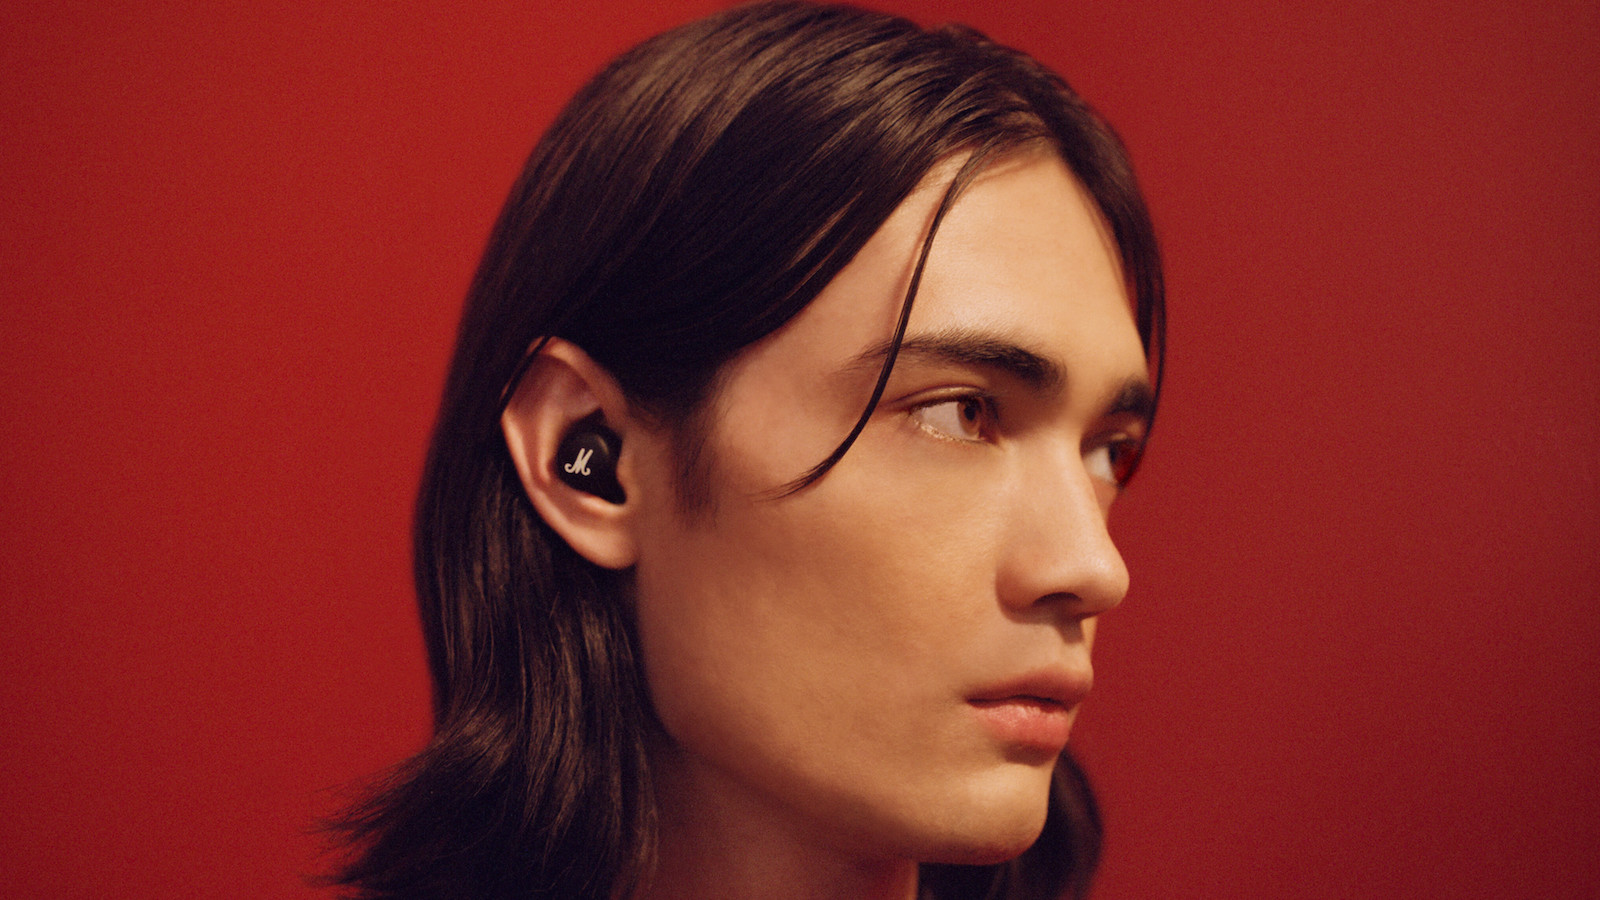 Marshall Mode II in-ear Bluetooth headphones deliver a thunderous audio experience